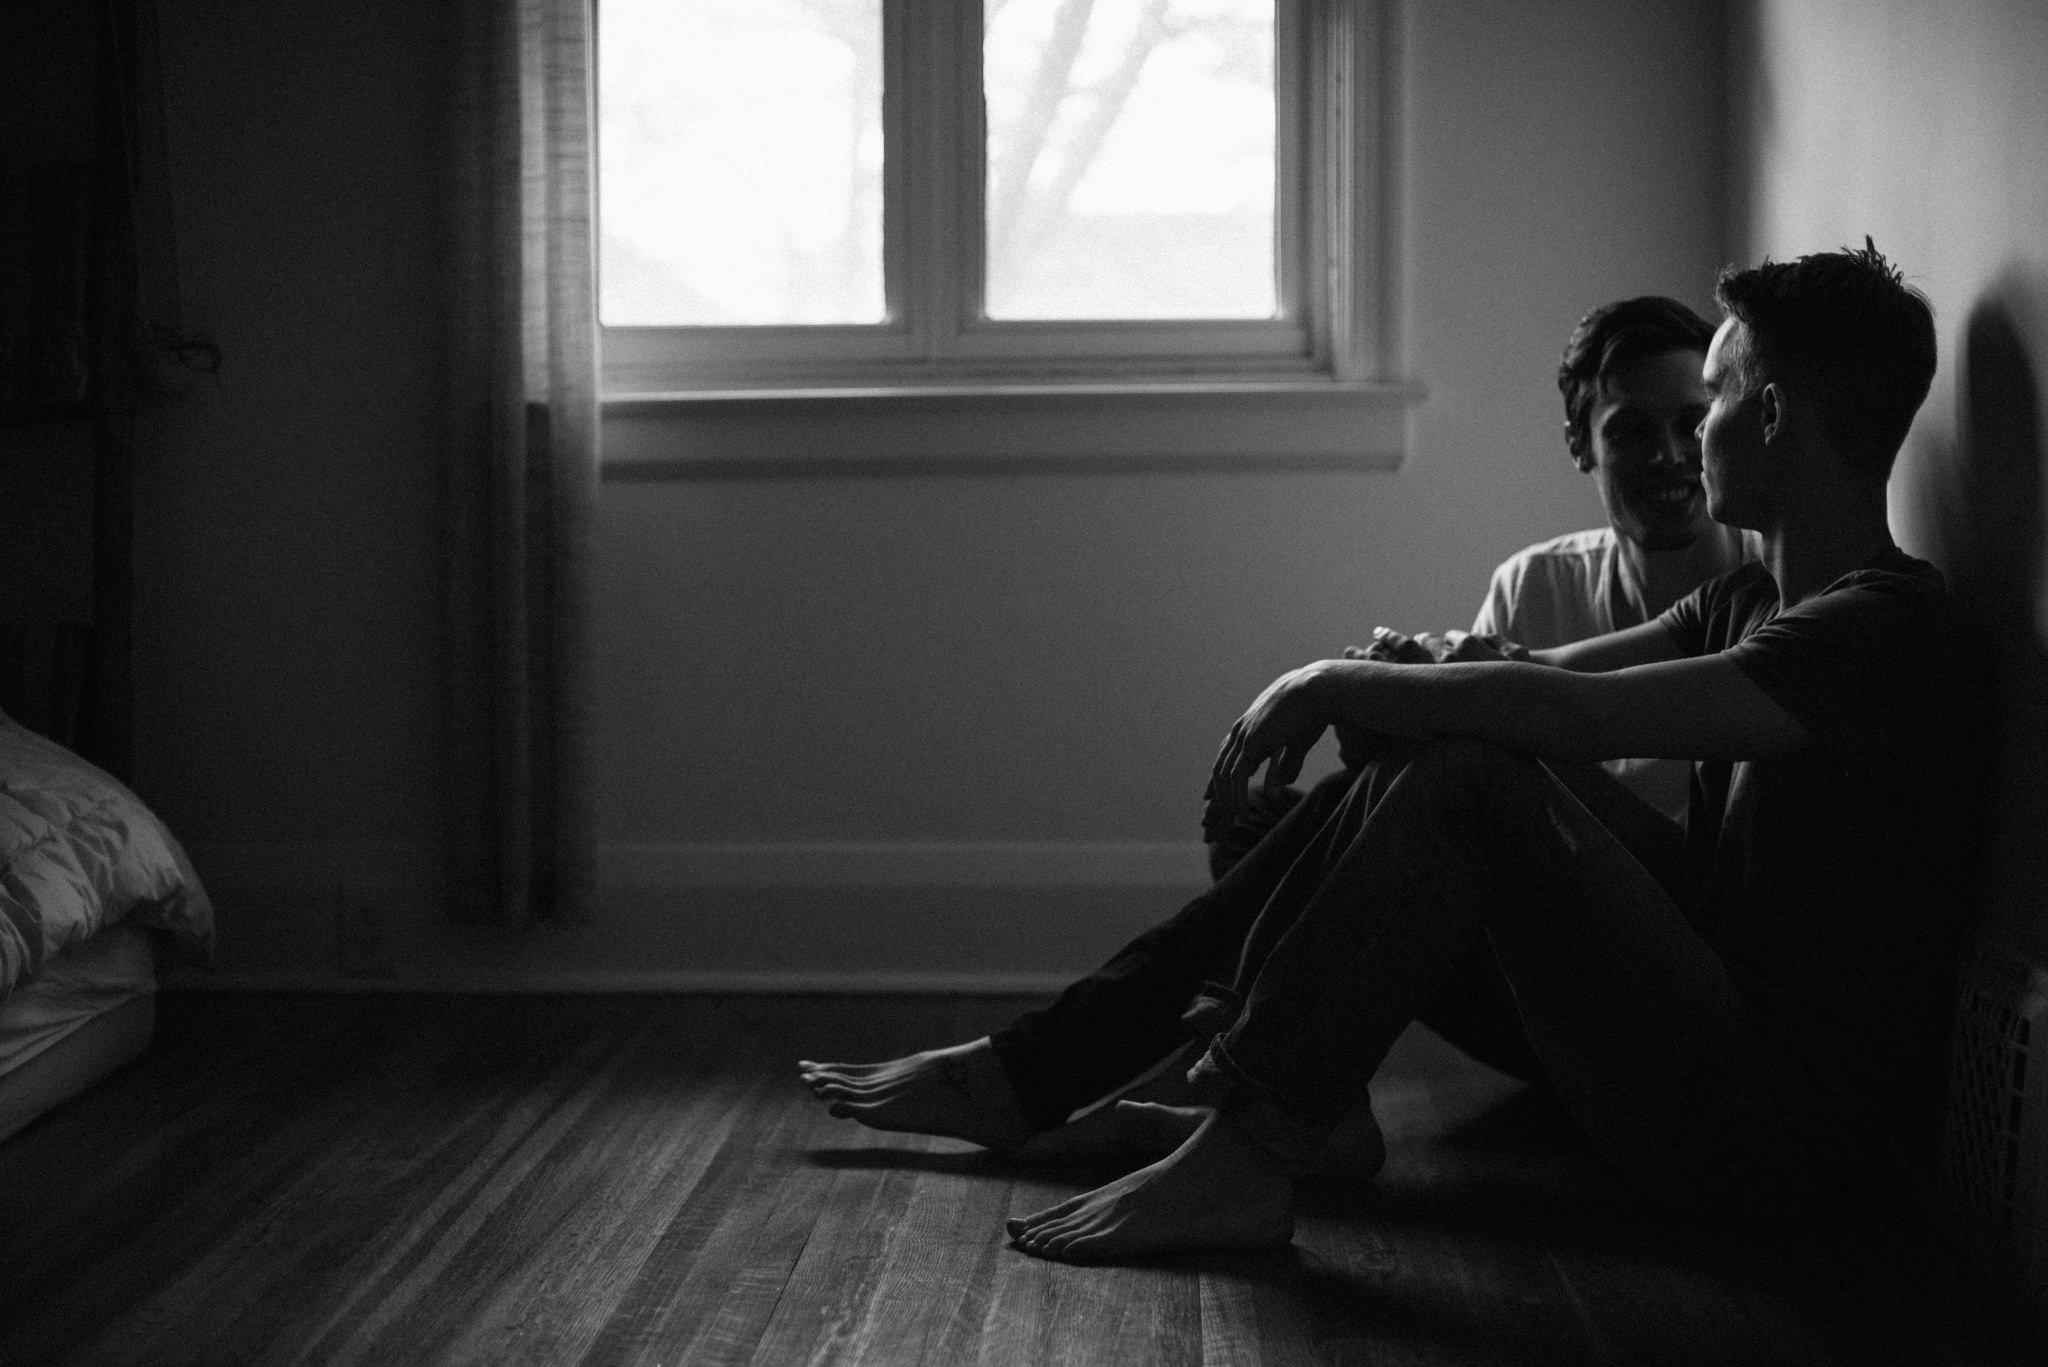 Daring Wanderer Photography - Daring Wanderer - Toronto portrait photographer - same sex couple - gay couple portraits - same sex male couple - intimate - couples session - intimate same sex portrait session - intimate couples session - bedroom shoot - love - lovers shoot